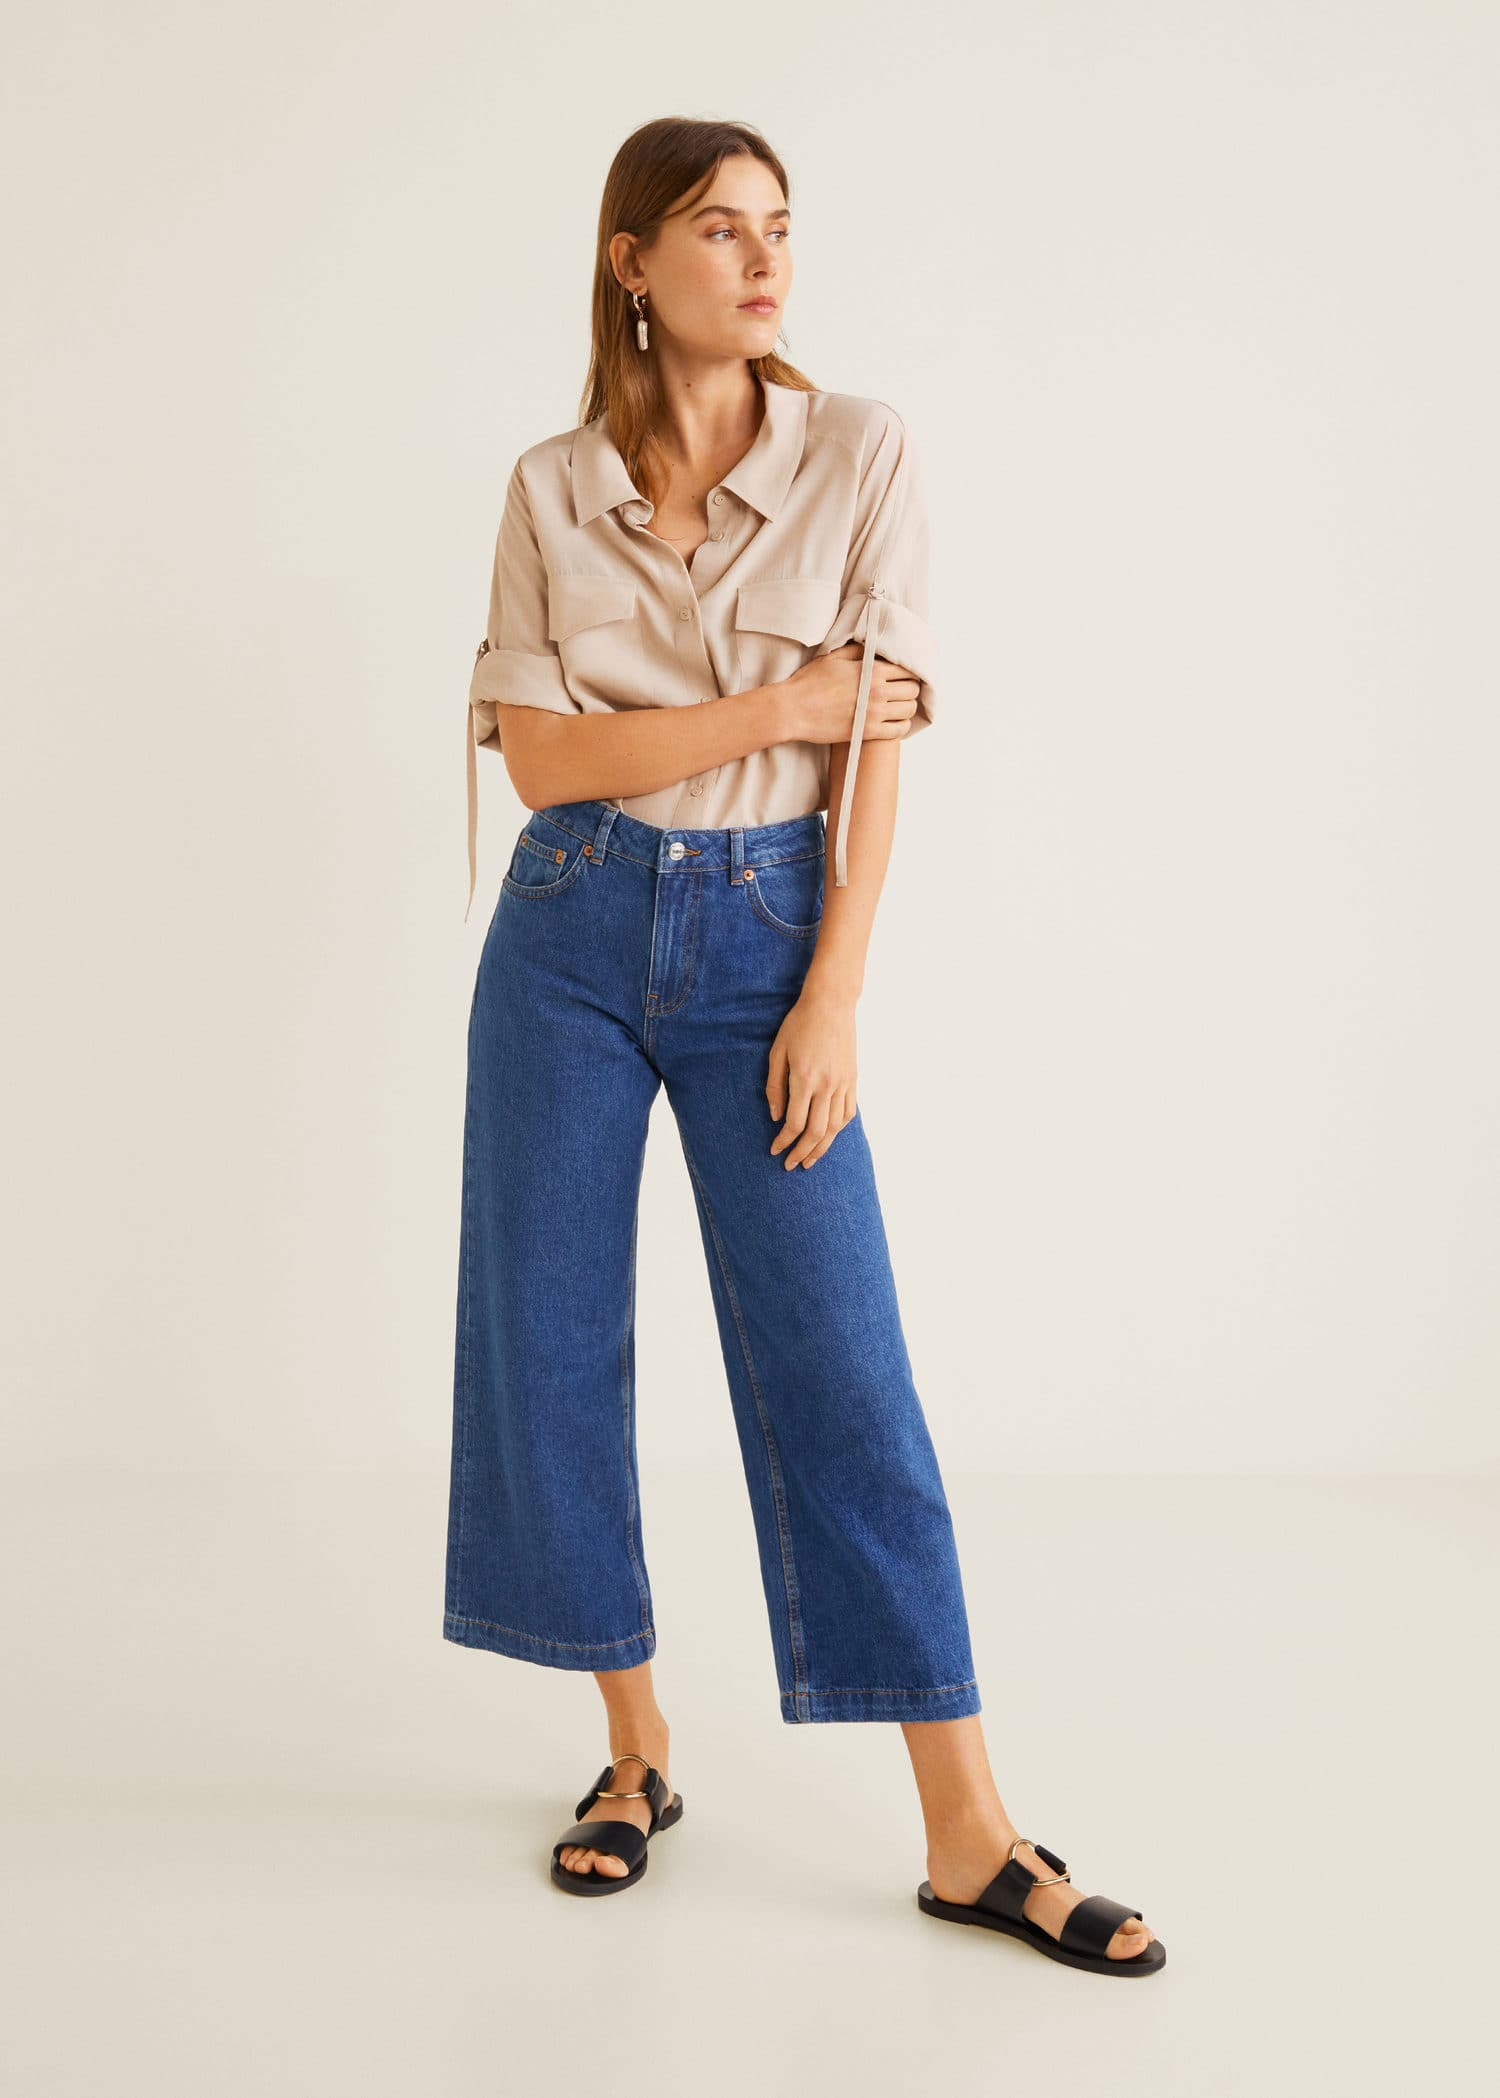 Relaxed España Culotte Jeans MujerMango Culotte Jeans Relaxed QxshdCtr